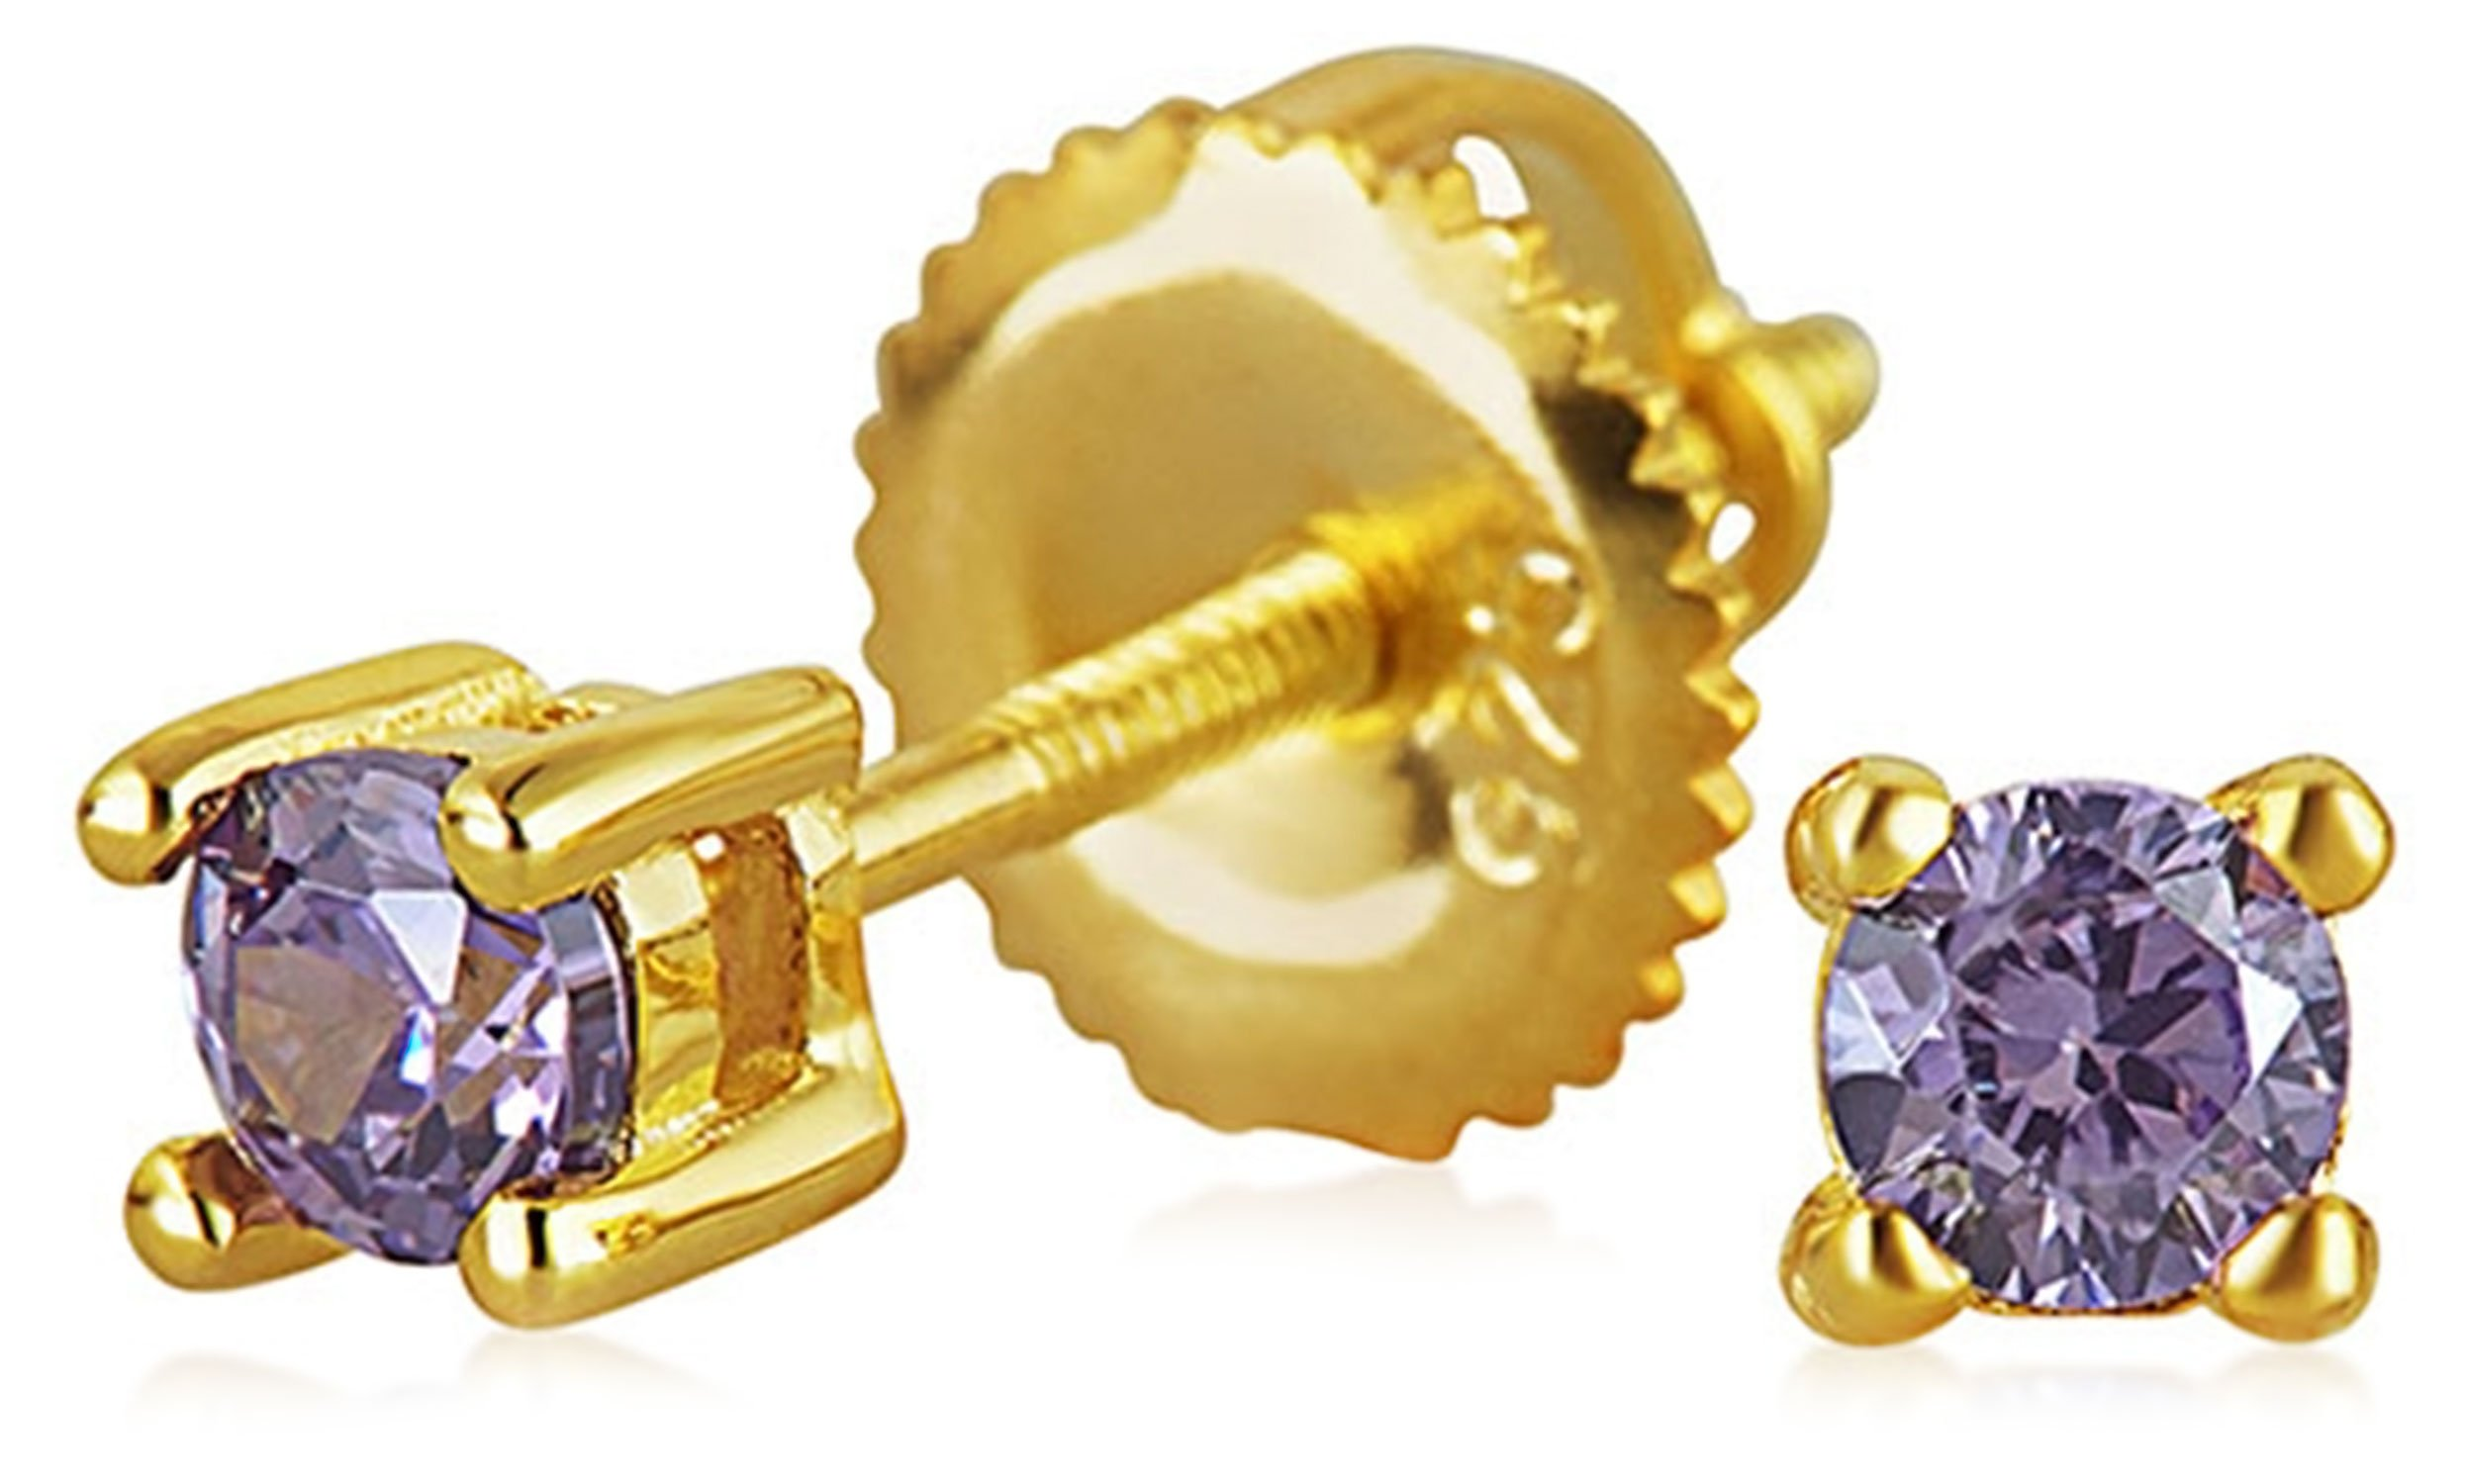 Minimalist Tiny .25CT CZ Simulated Gemstones Solitaire Stud Earrings For Women 14K Gold Plated Sterling Silver Screwback